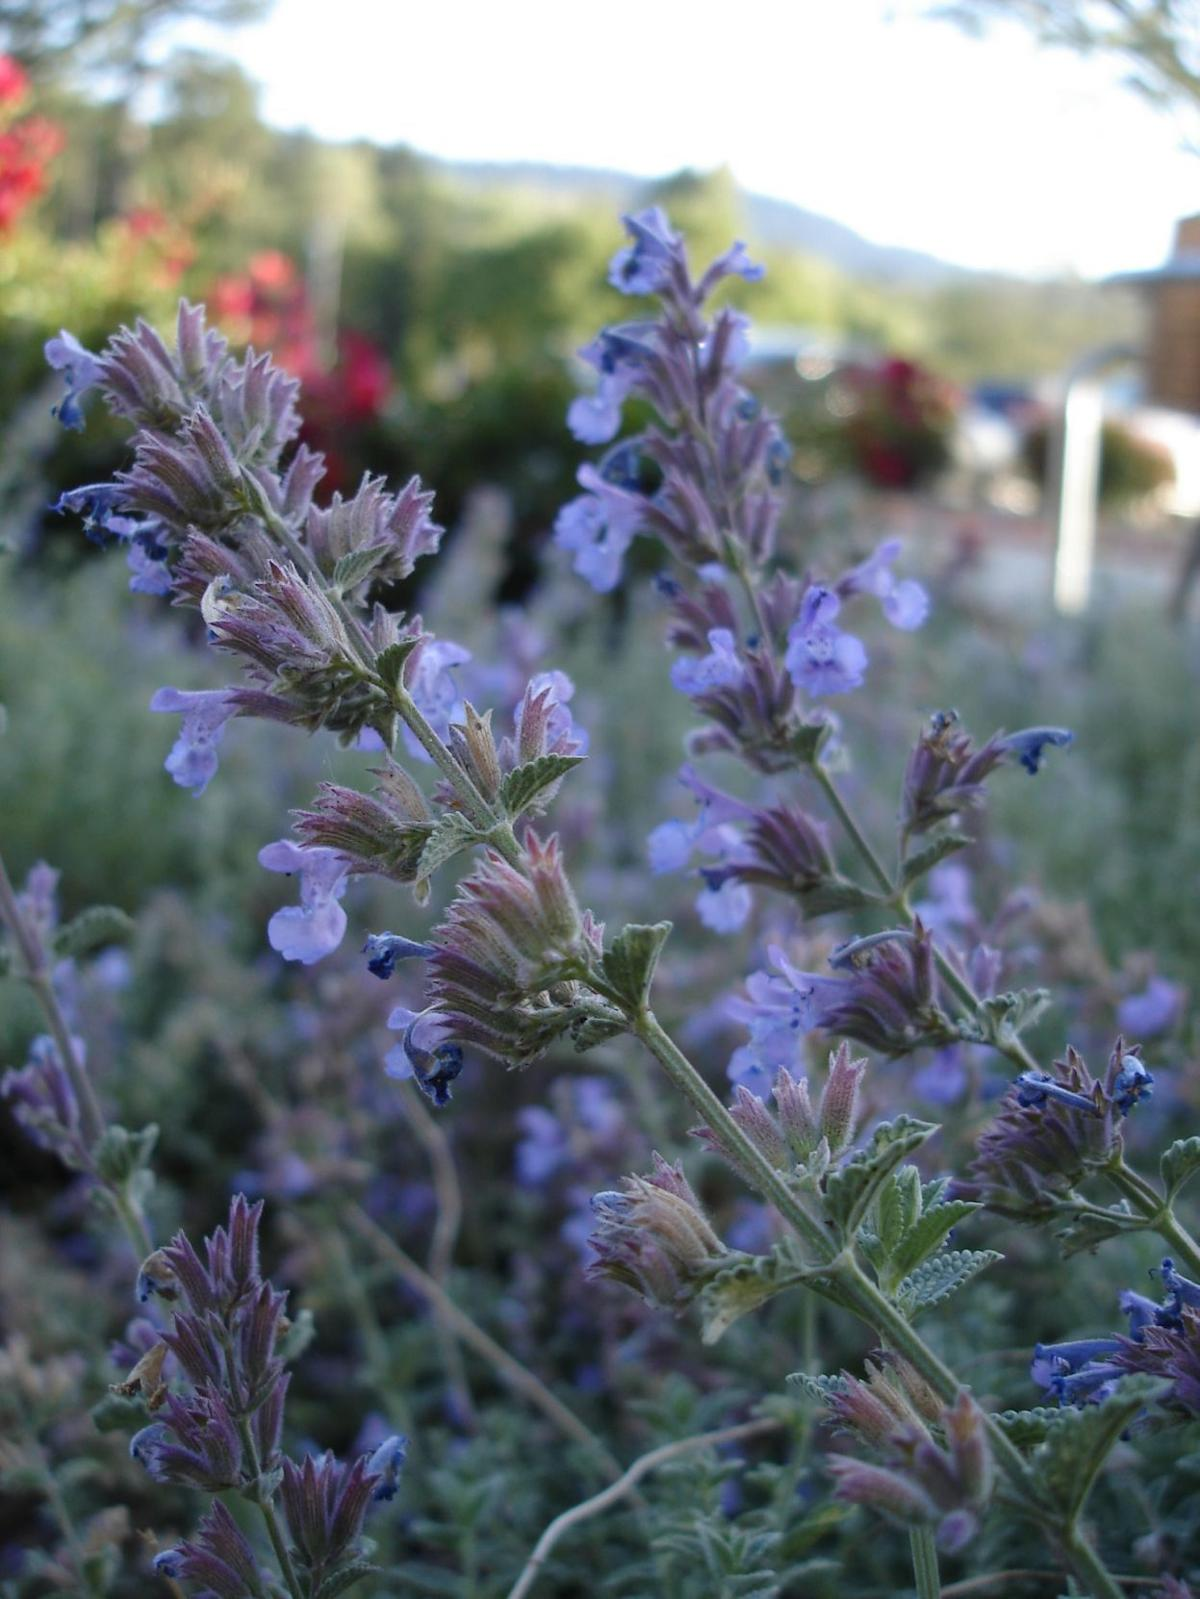 Herbs add spice to life